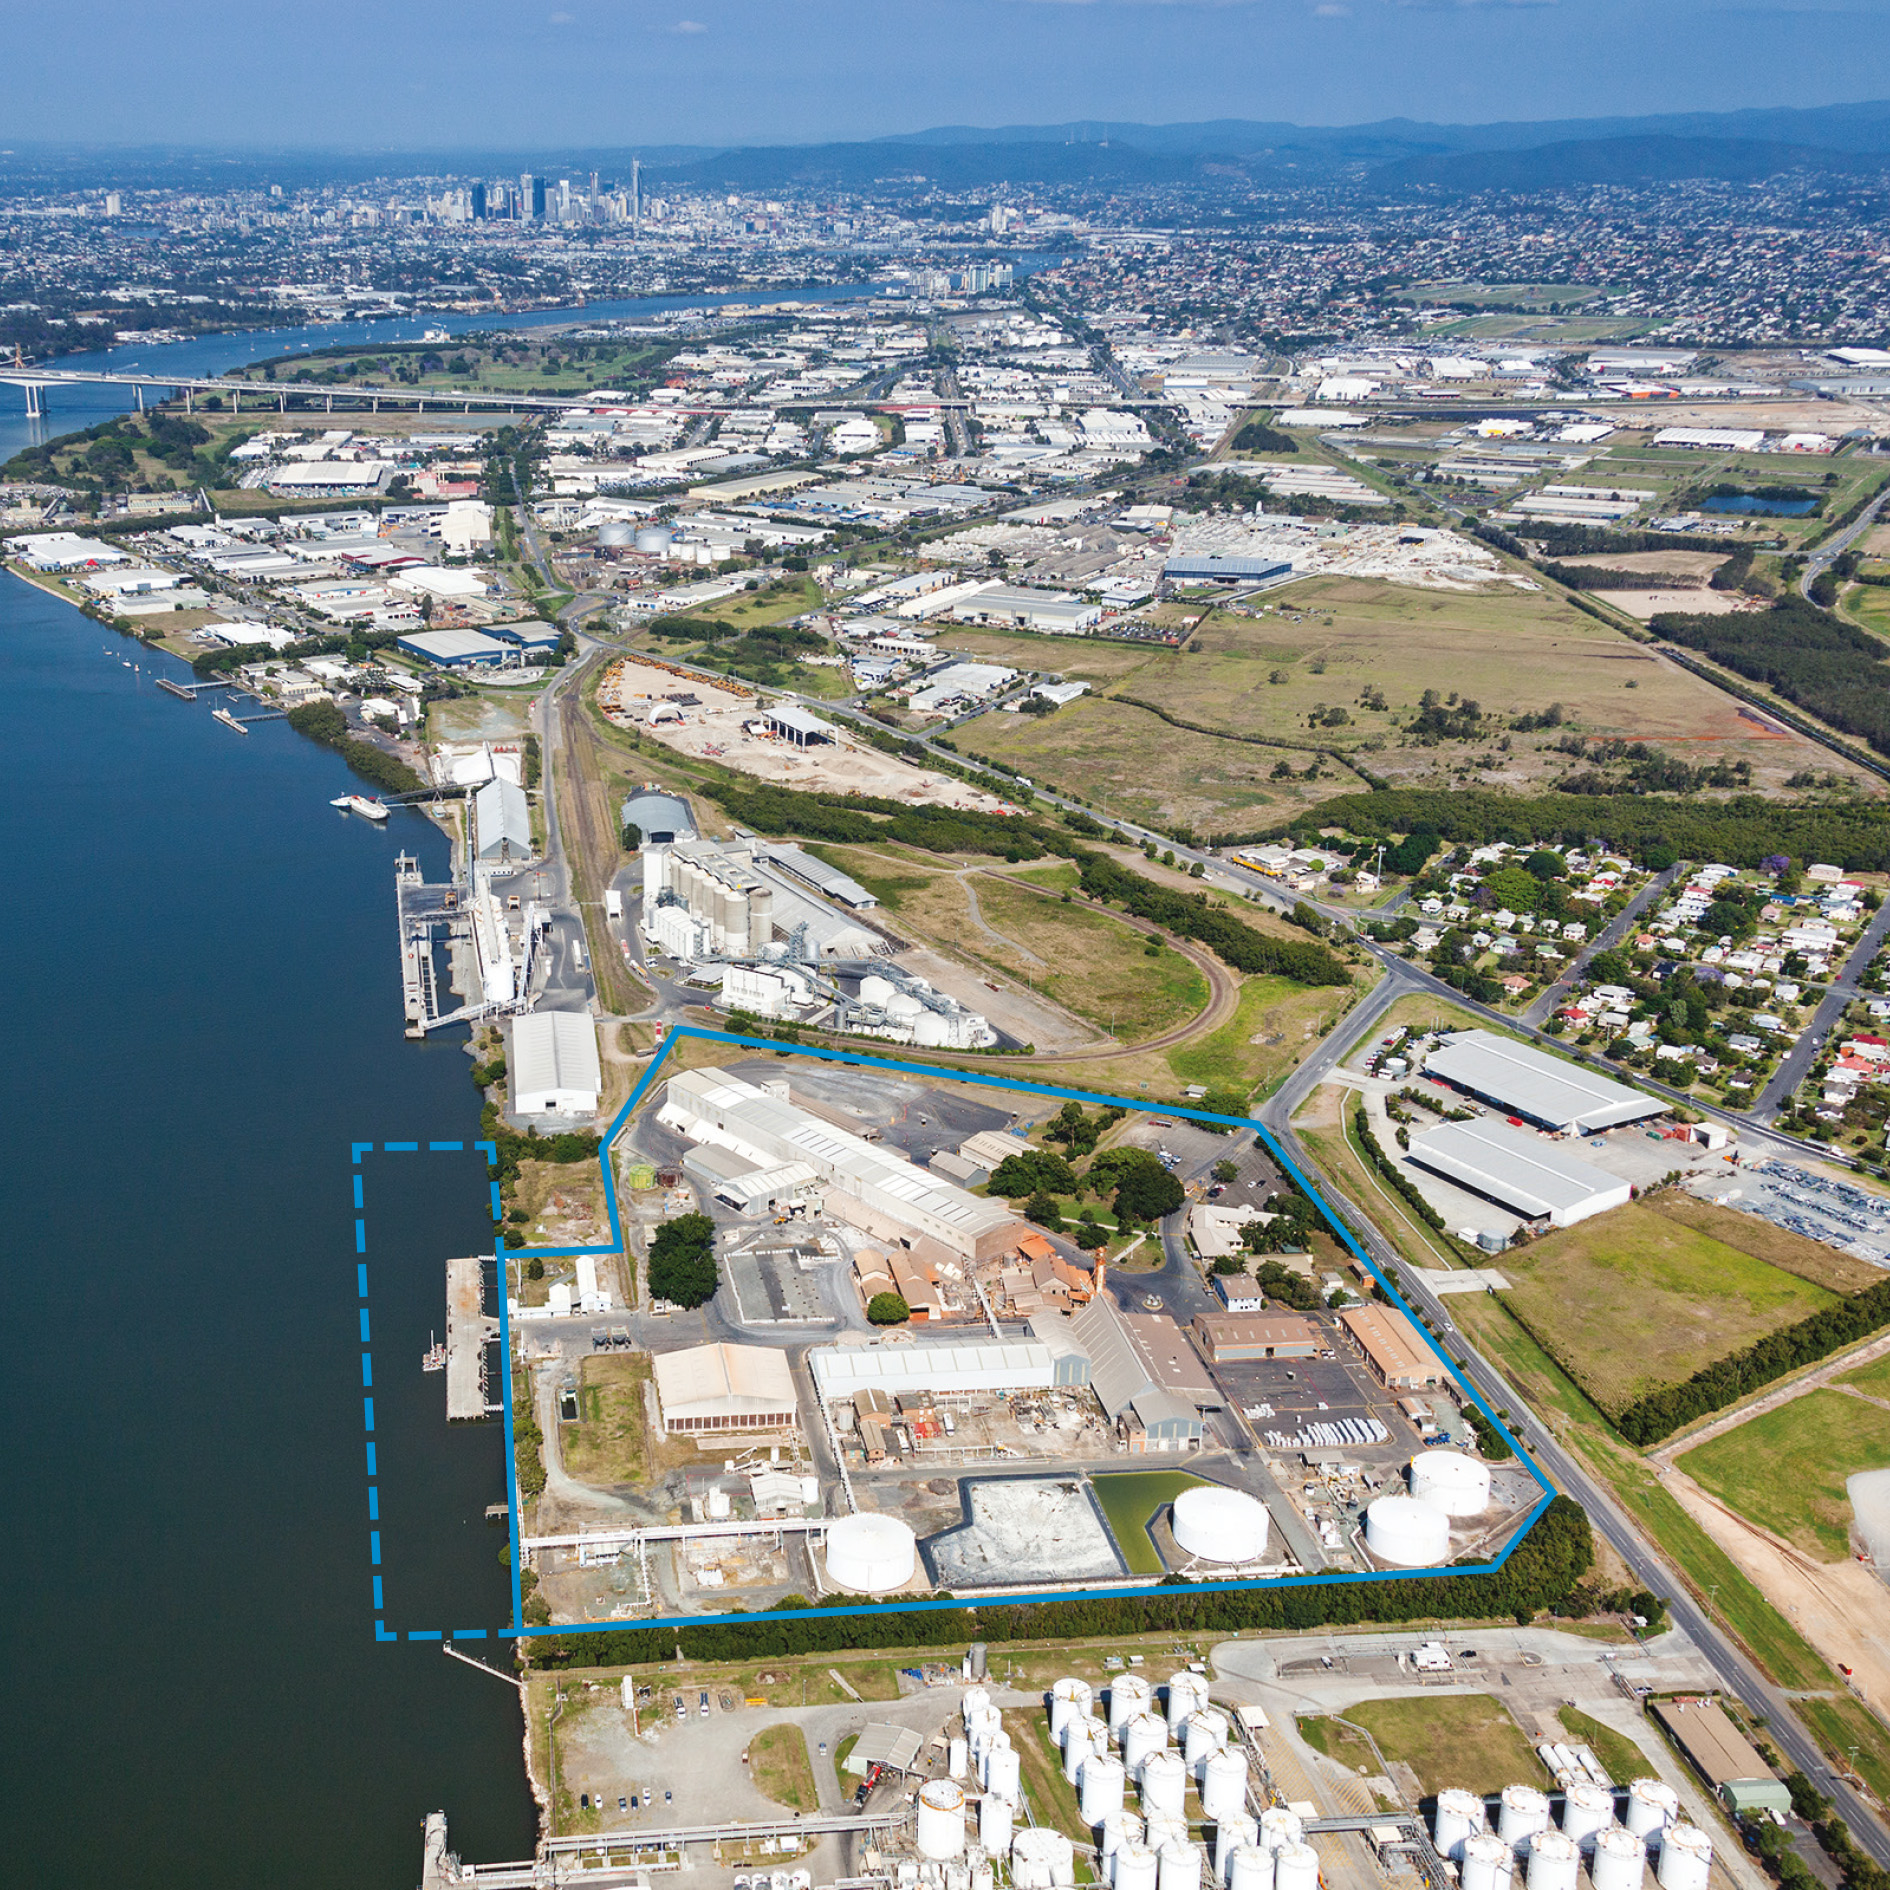 Industrial Property: Commercial Real Estate And Property For Sale In Australia